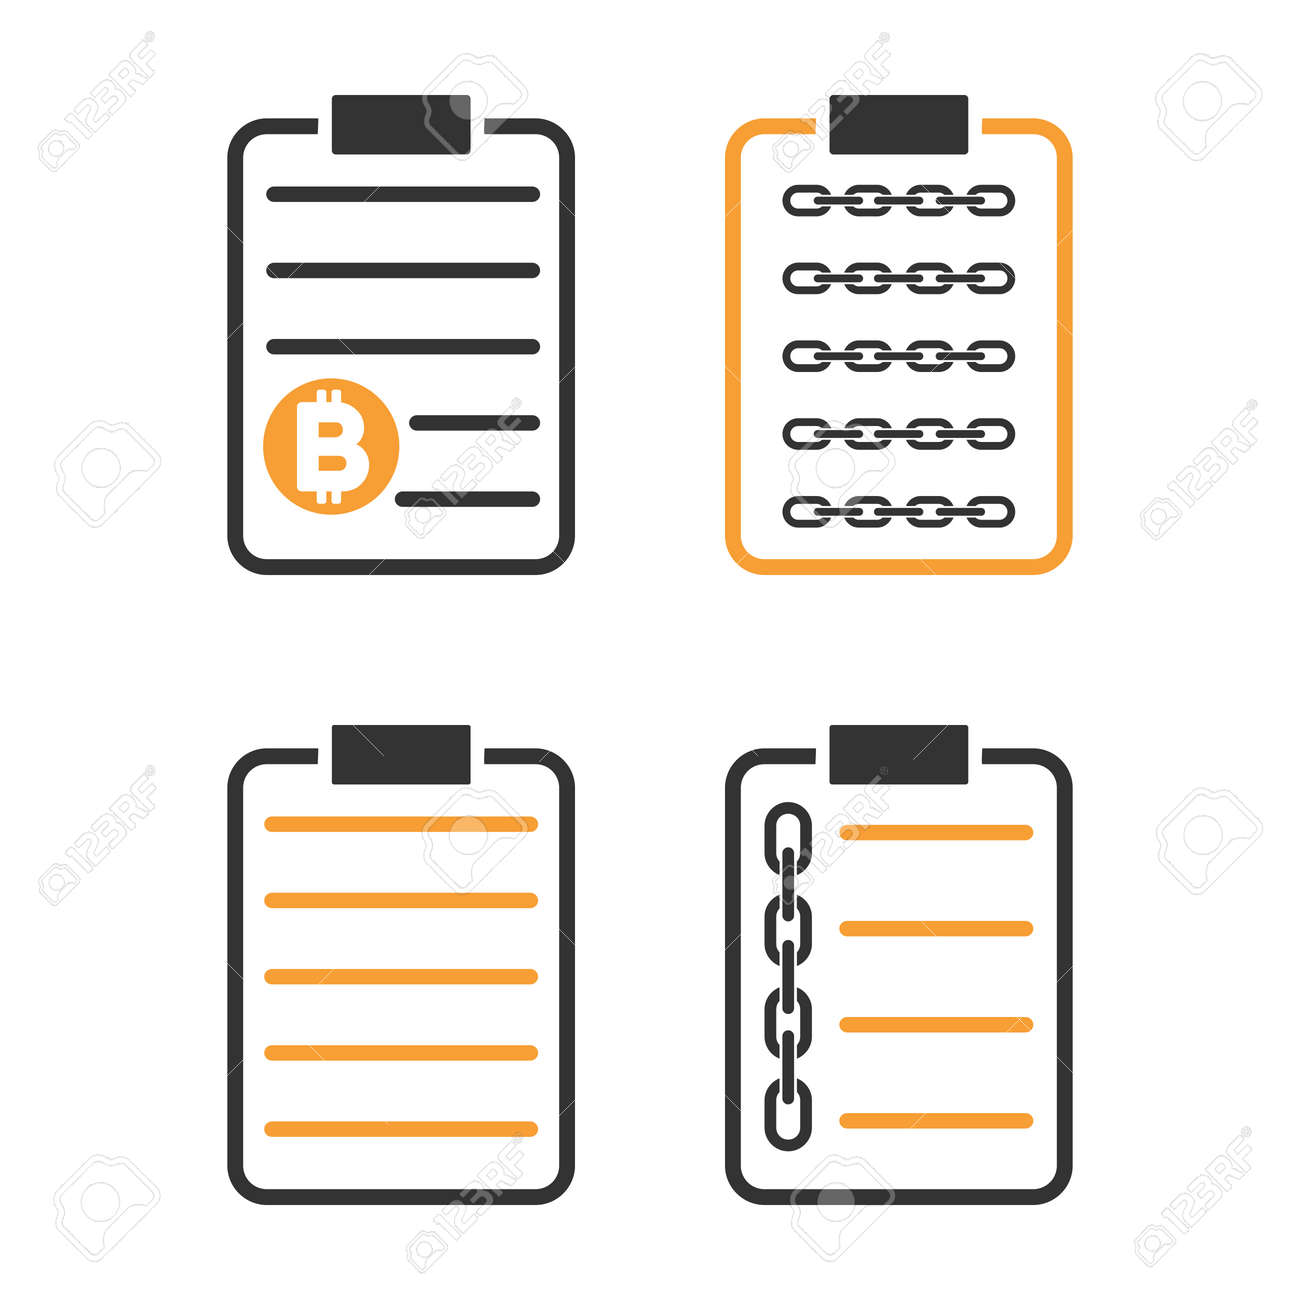 blockchain smart contract vector icon set style is bicolor flat